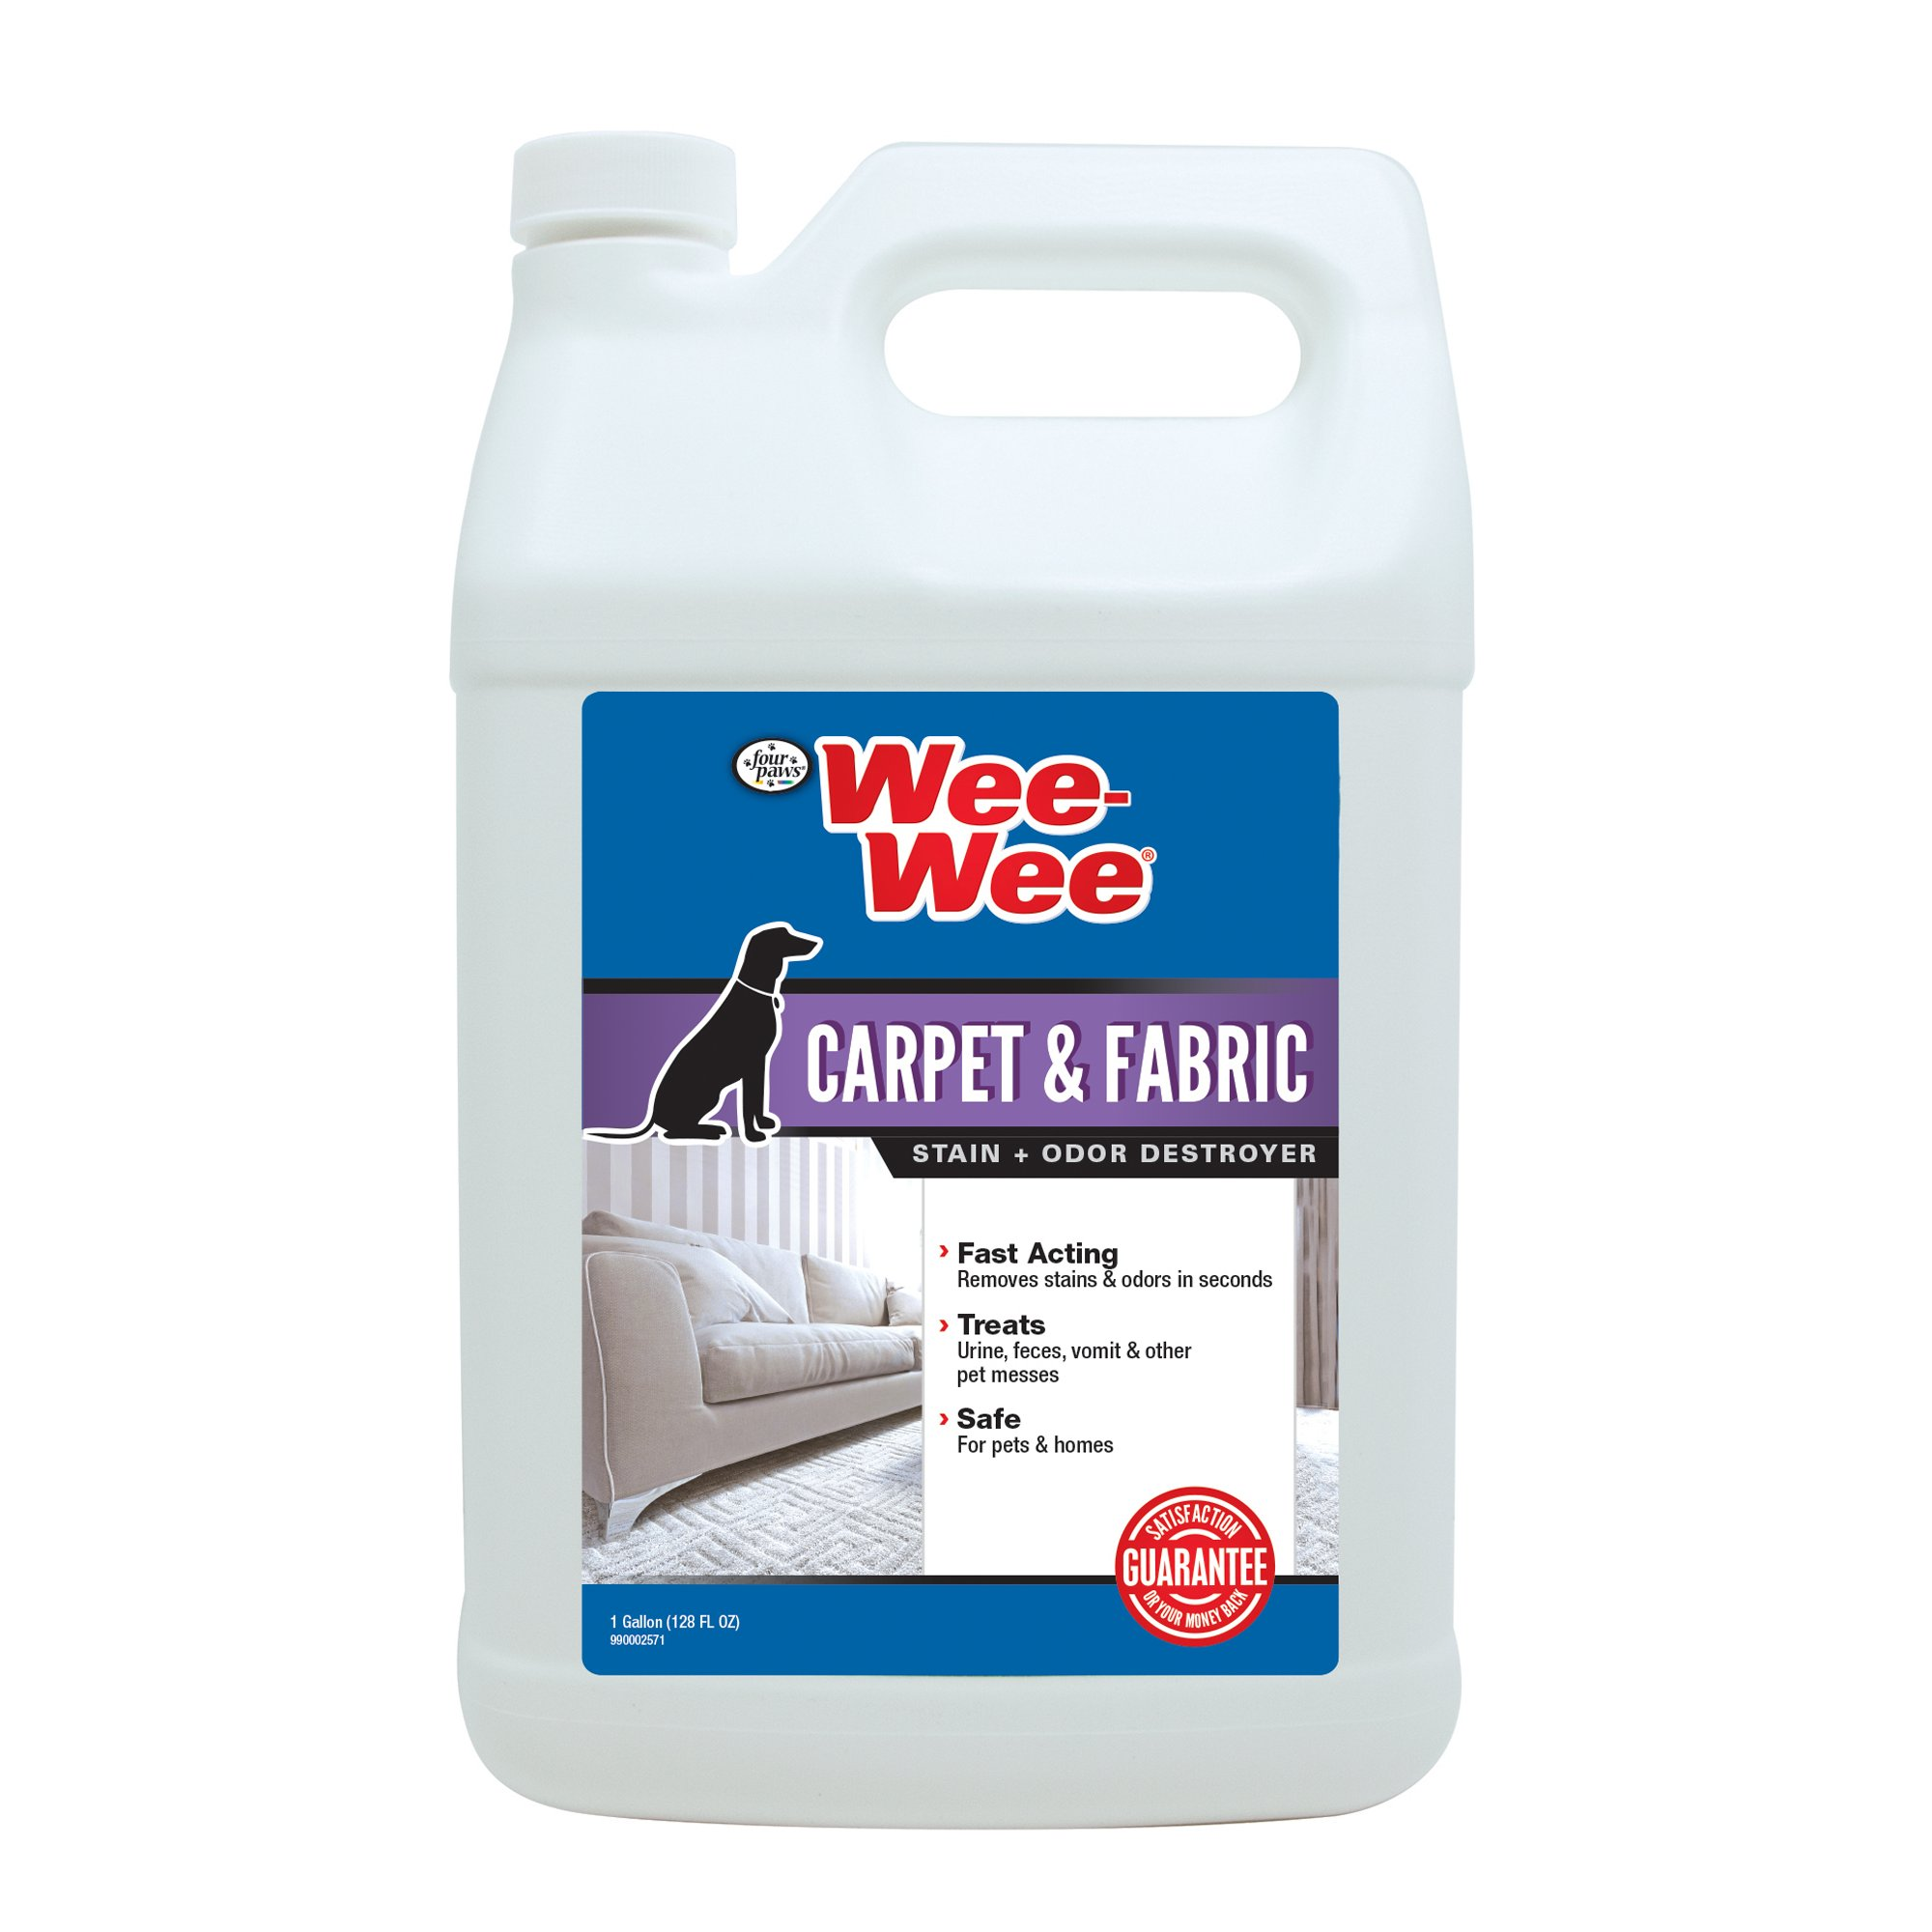 Wee-Wee Carpet & Fabric Cleaner Stain & Odor Remover